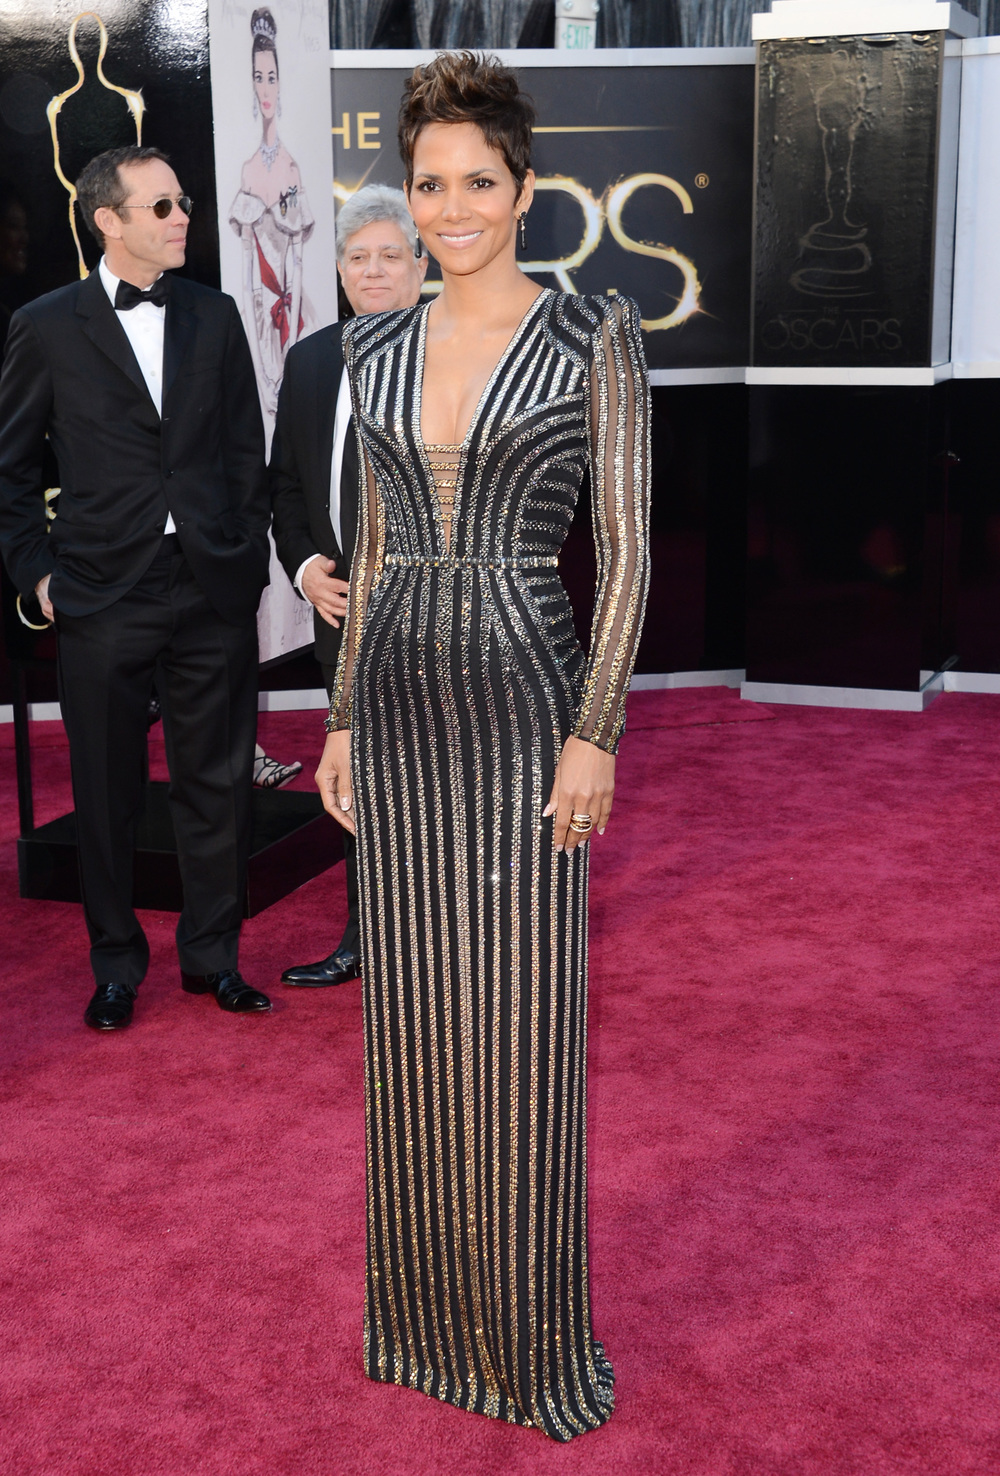 Halle is a showstopper in this glittery Versace gown, glamorous!